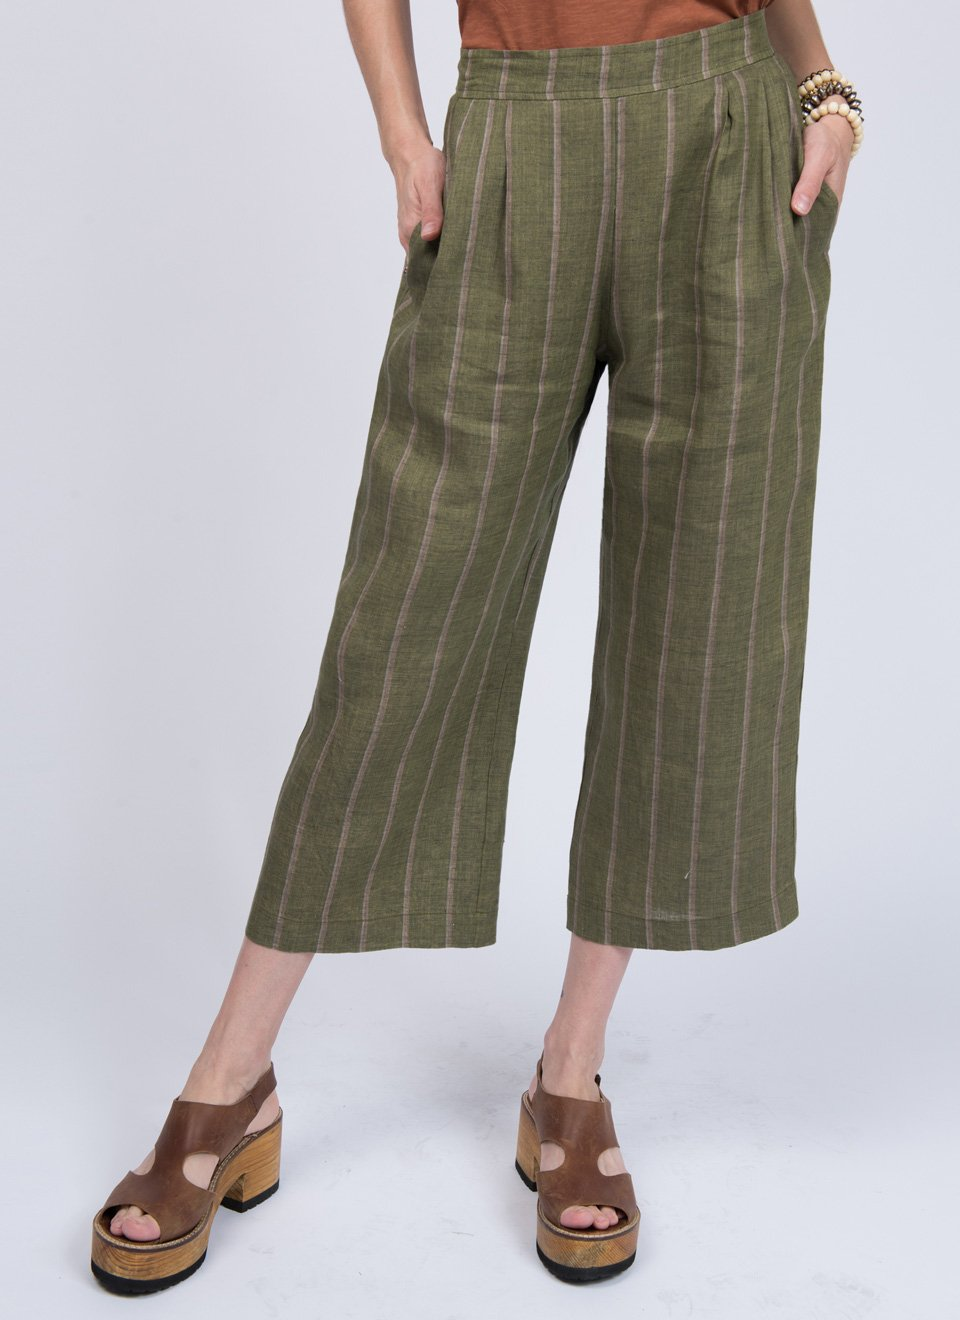 Get in Line Pant from Ivy Jane